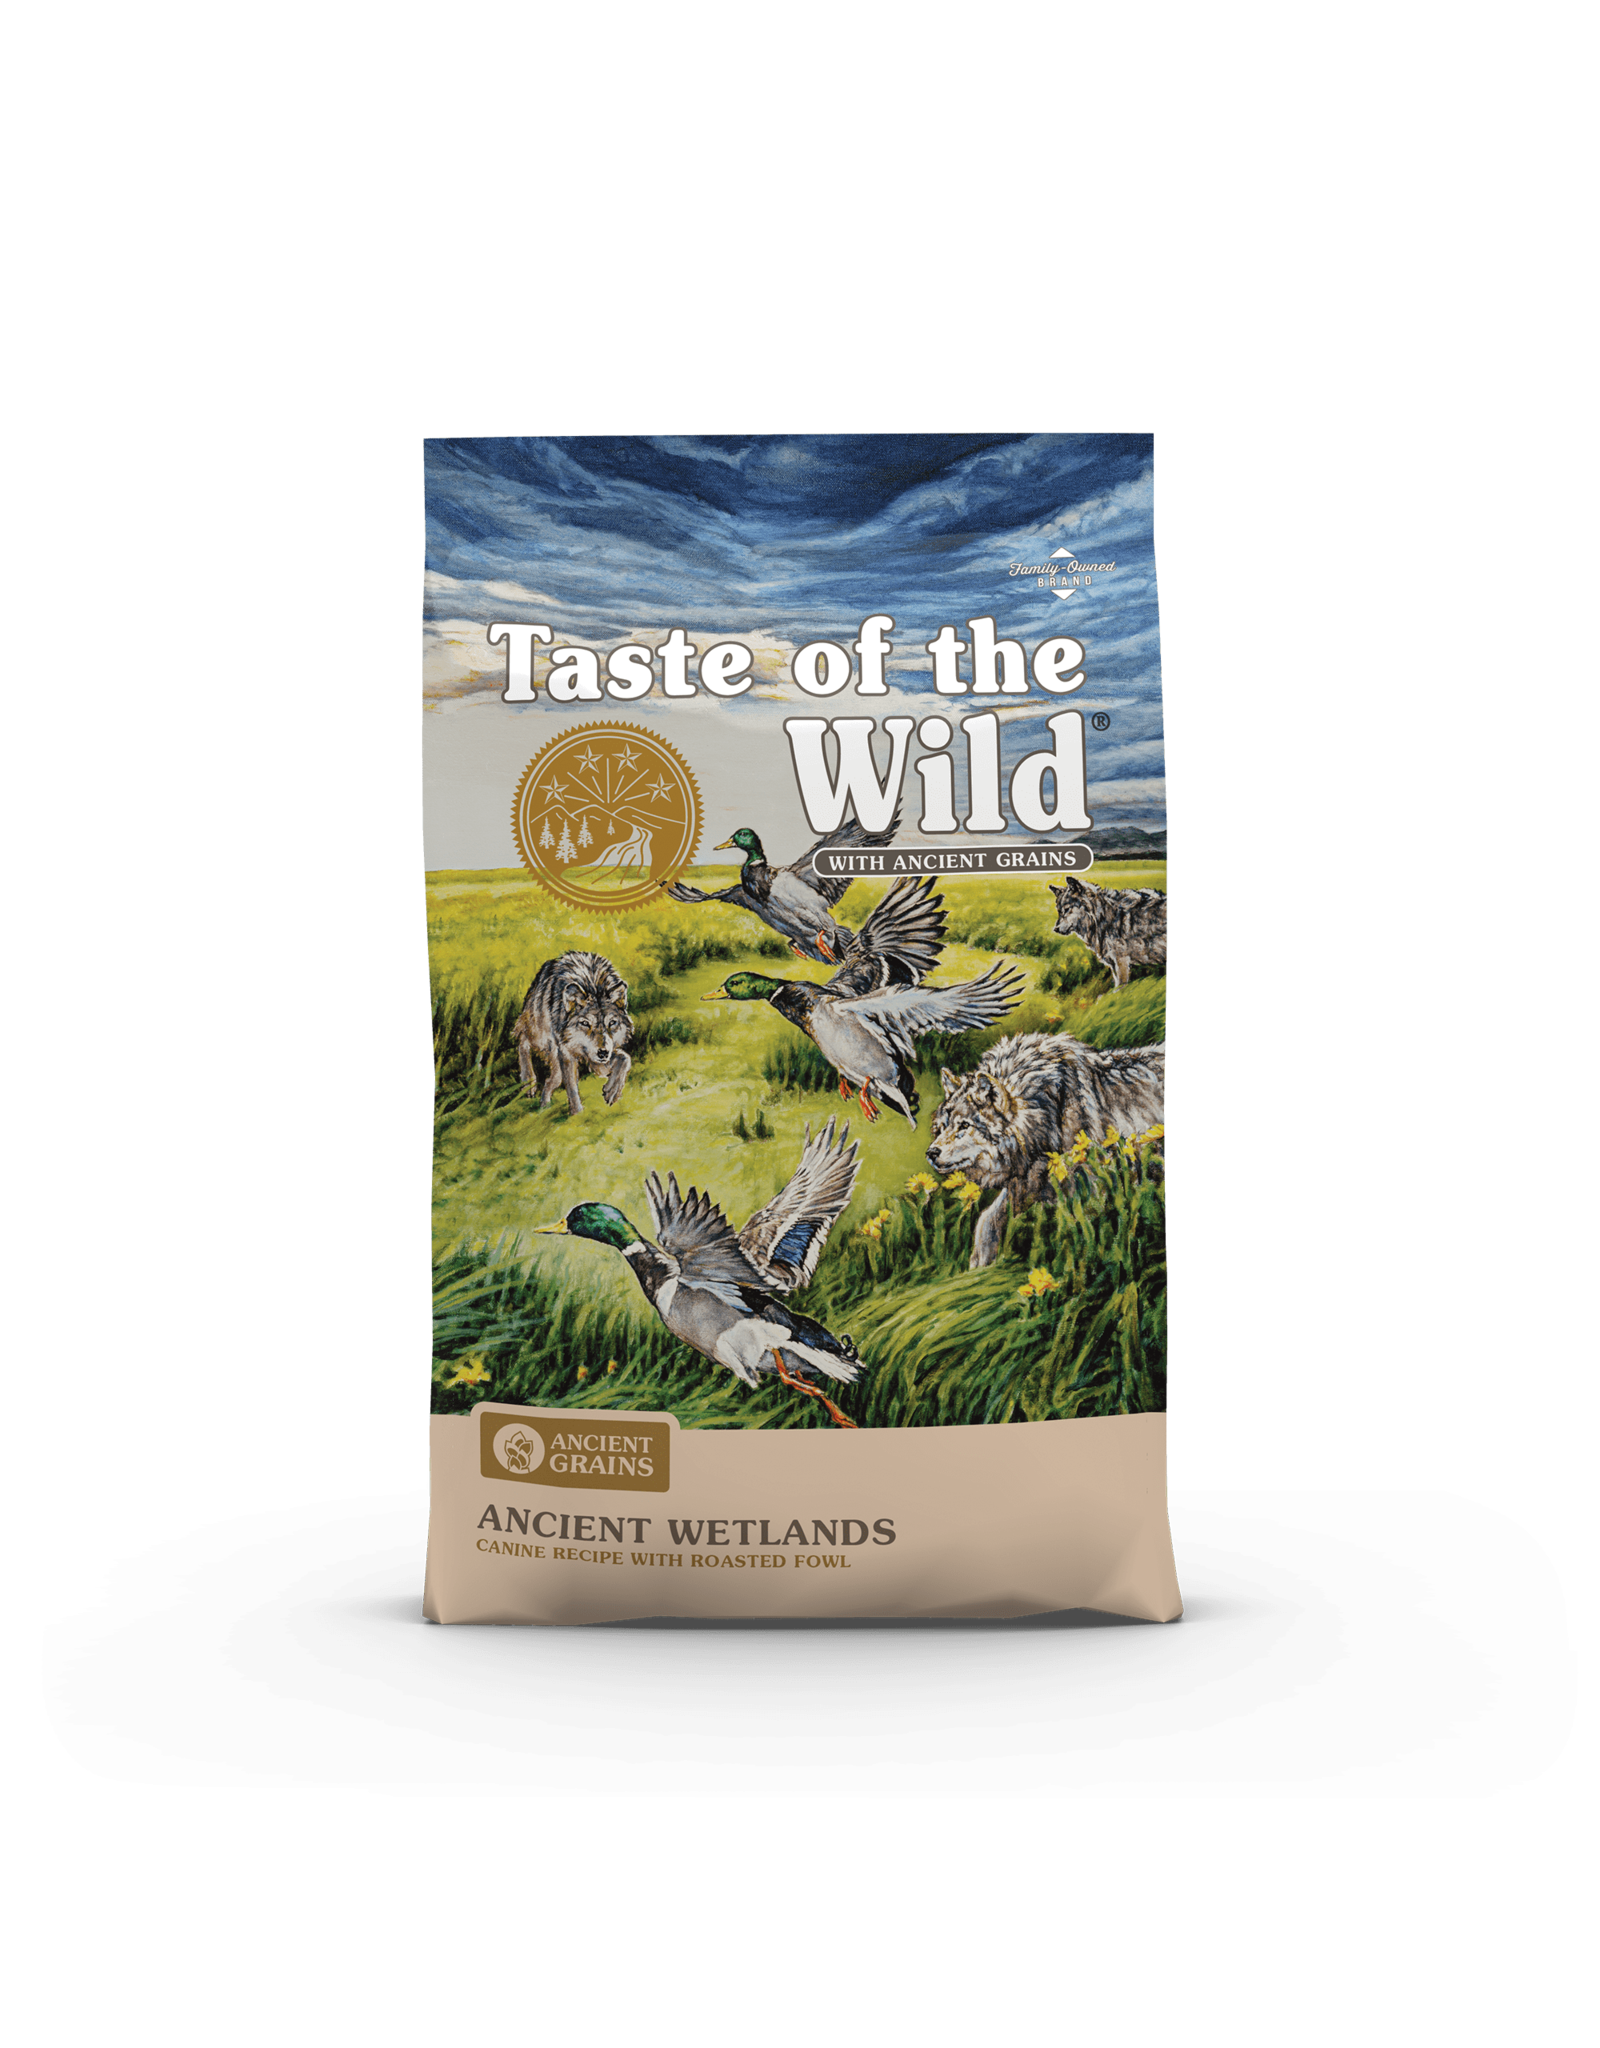 Taste of the Wild Taste of the Wild Ancient Wetlands Canine Recipe with Roasted Fowl Dog Food